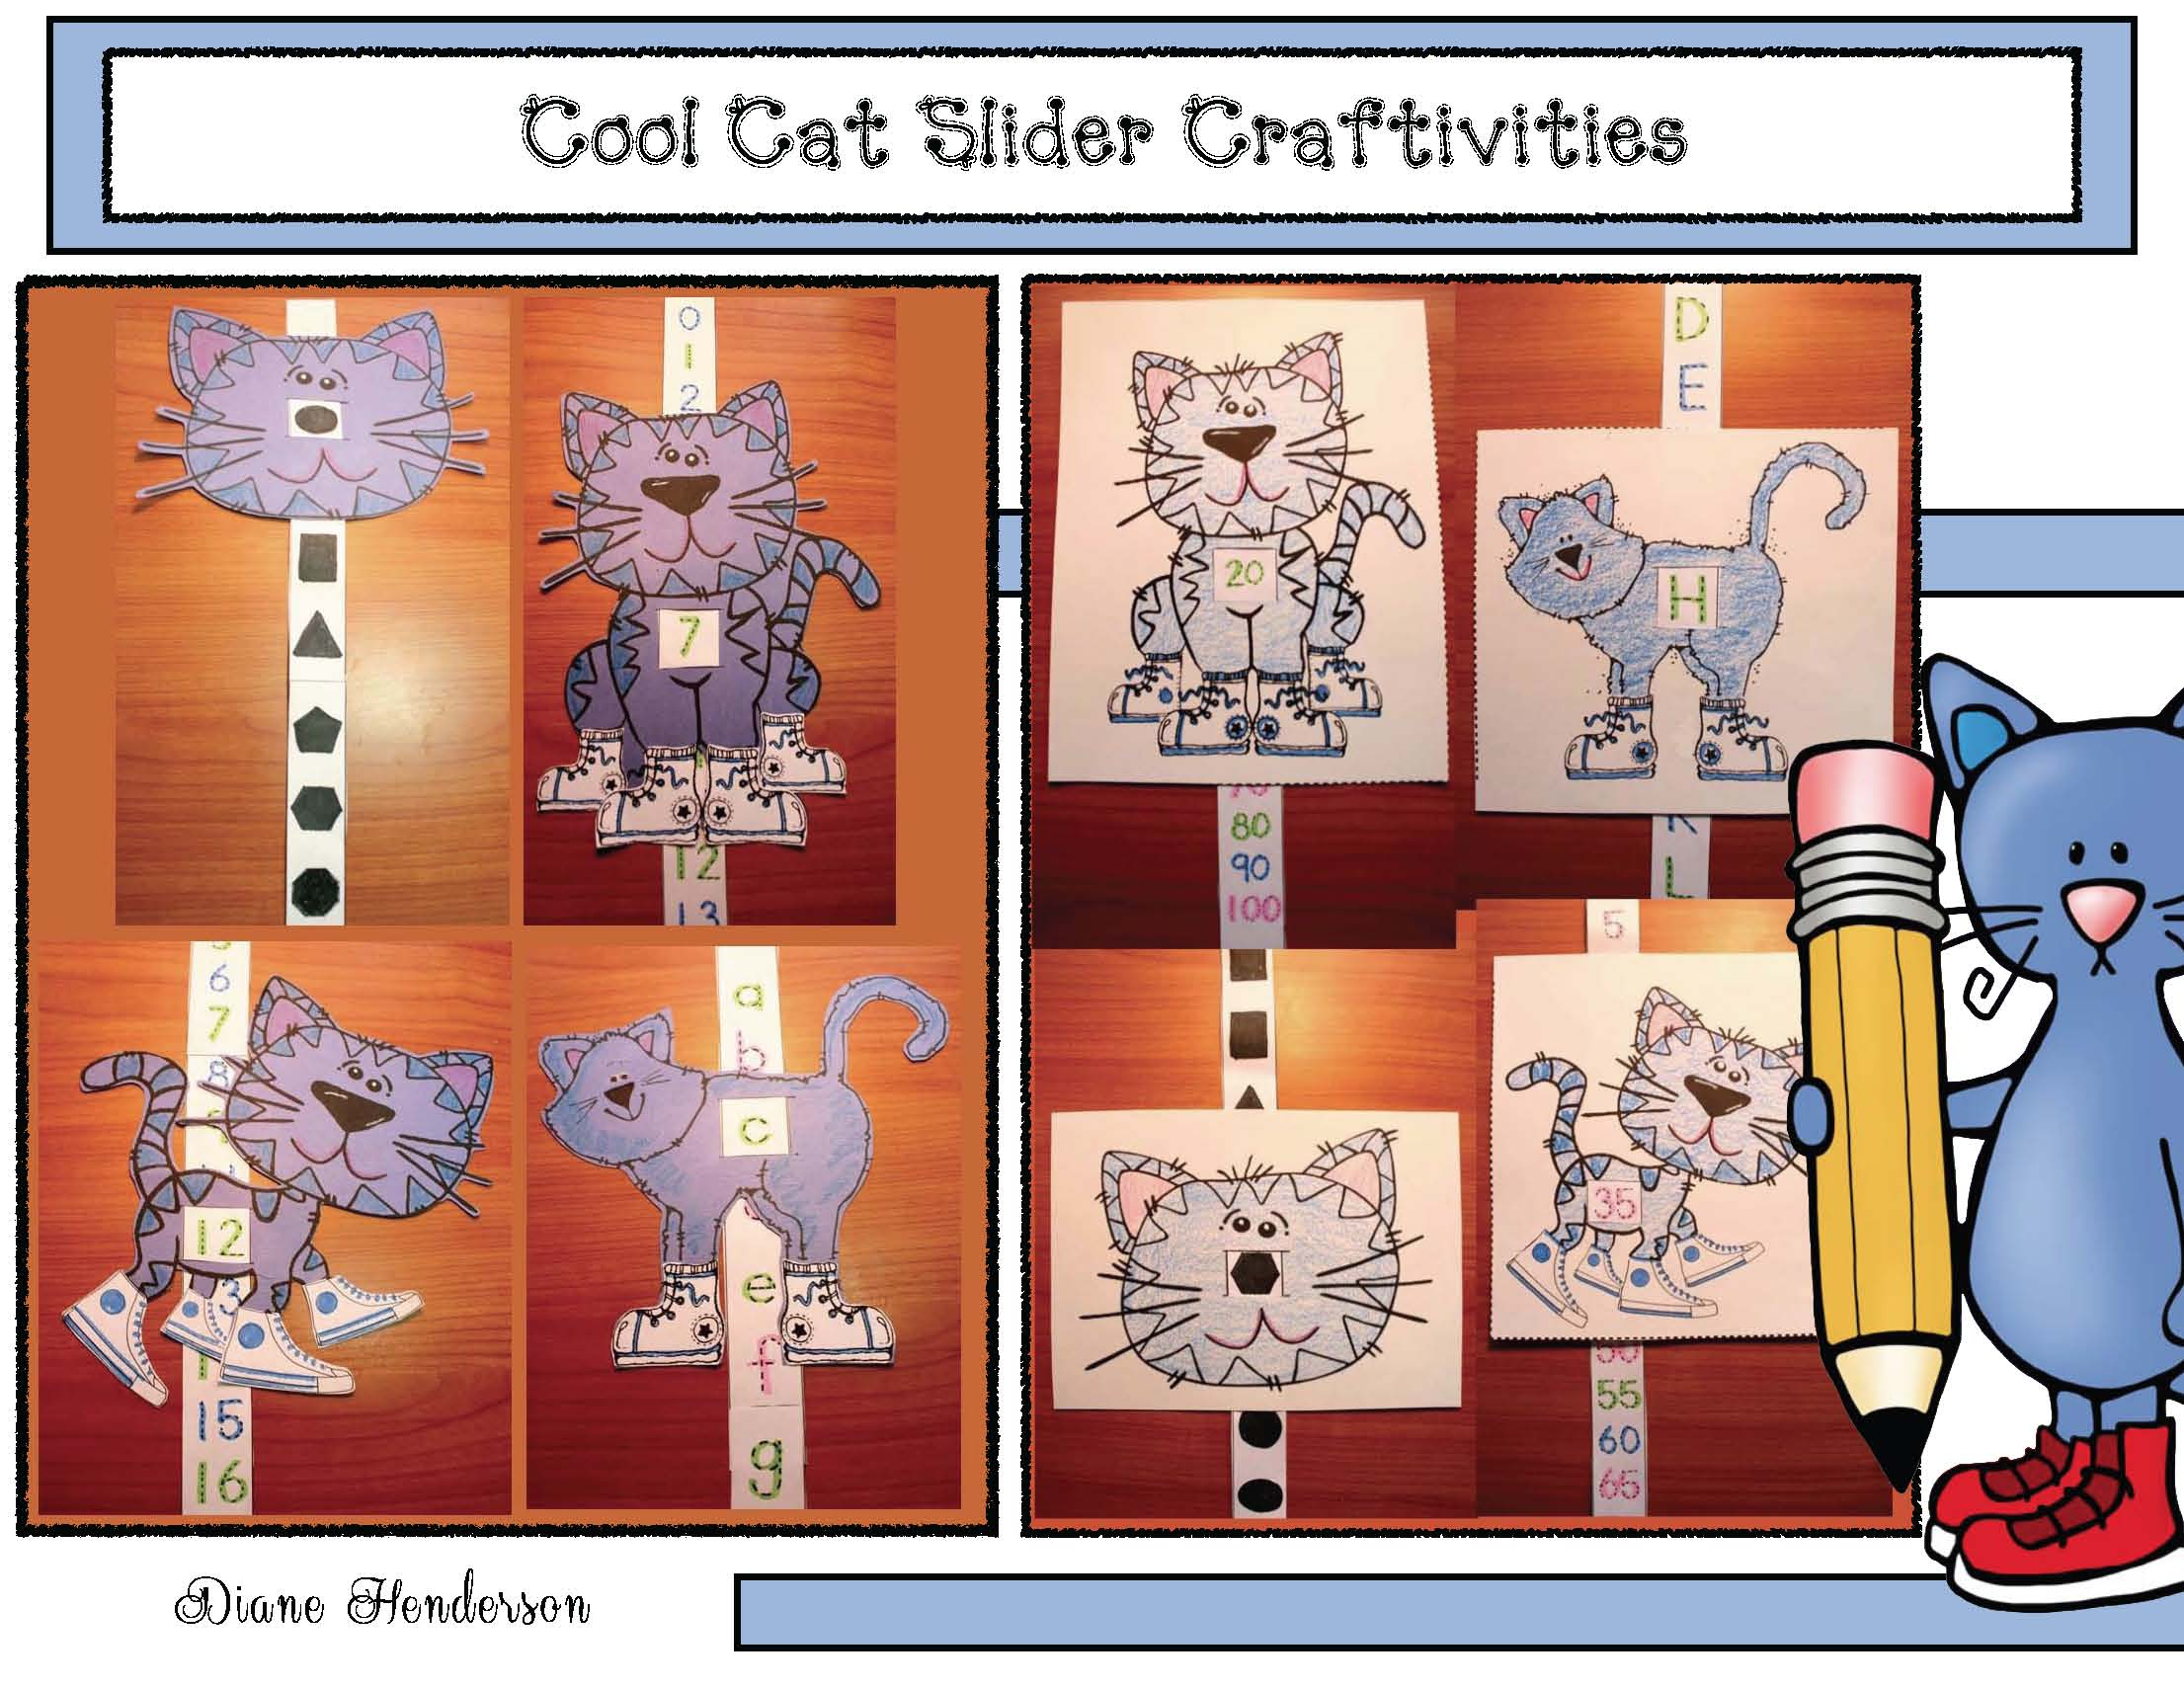 cov cool cat slider crafts